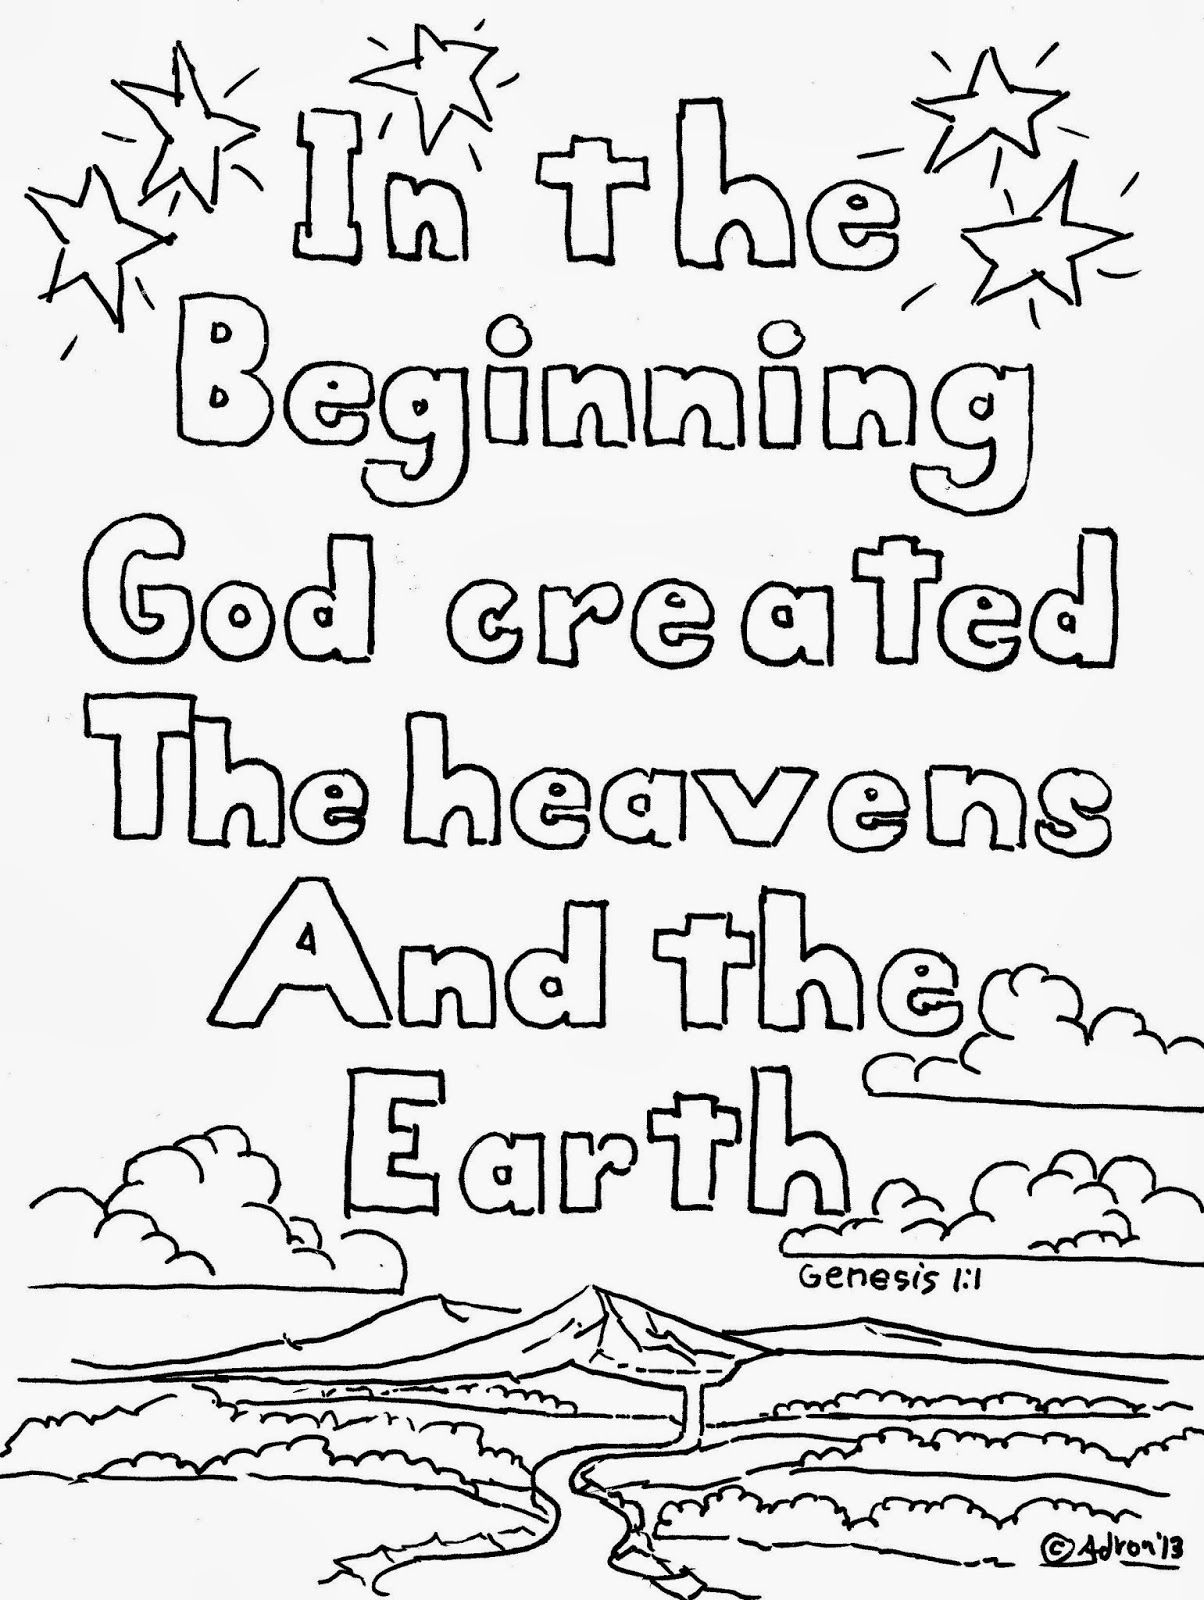 Free printable coloring pages gods creation - To Find More Kids Print And Color Pages Like This Click On The Label Awana